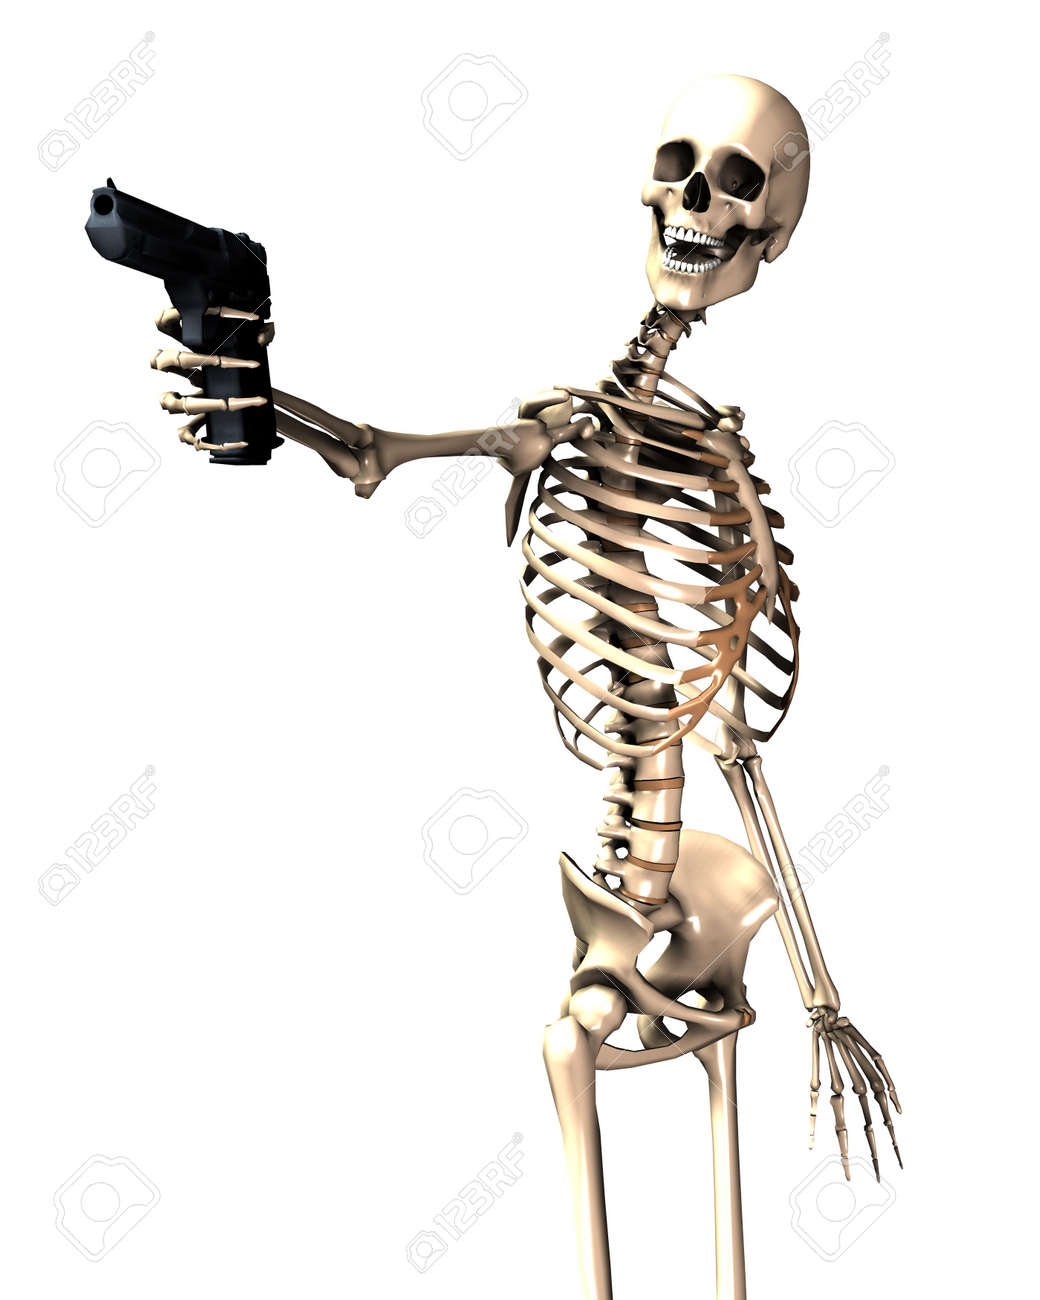 An Image Of A Skeleton With A Firearm, A Possible Interesting ...